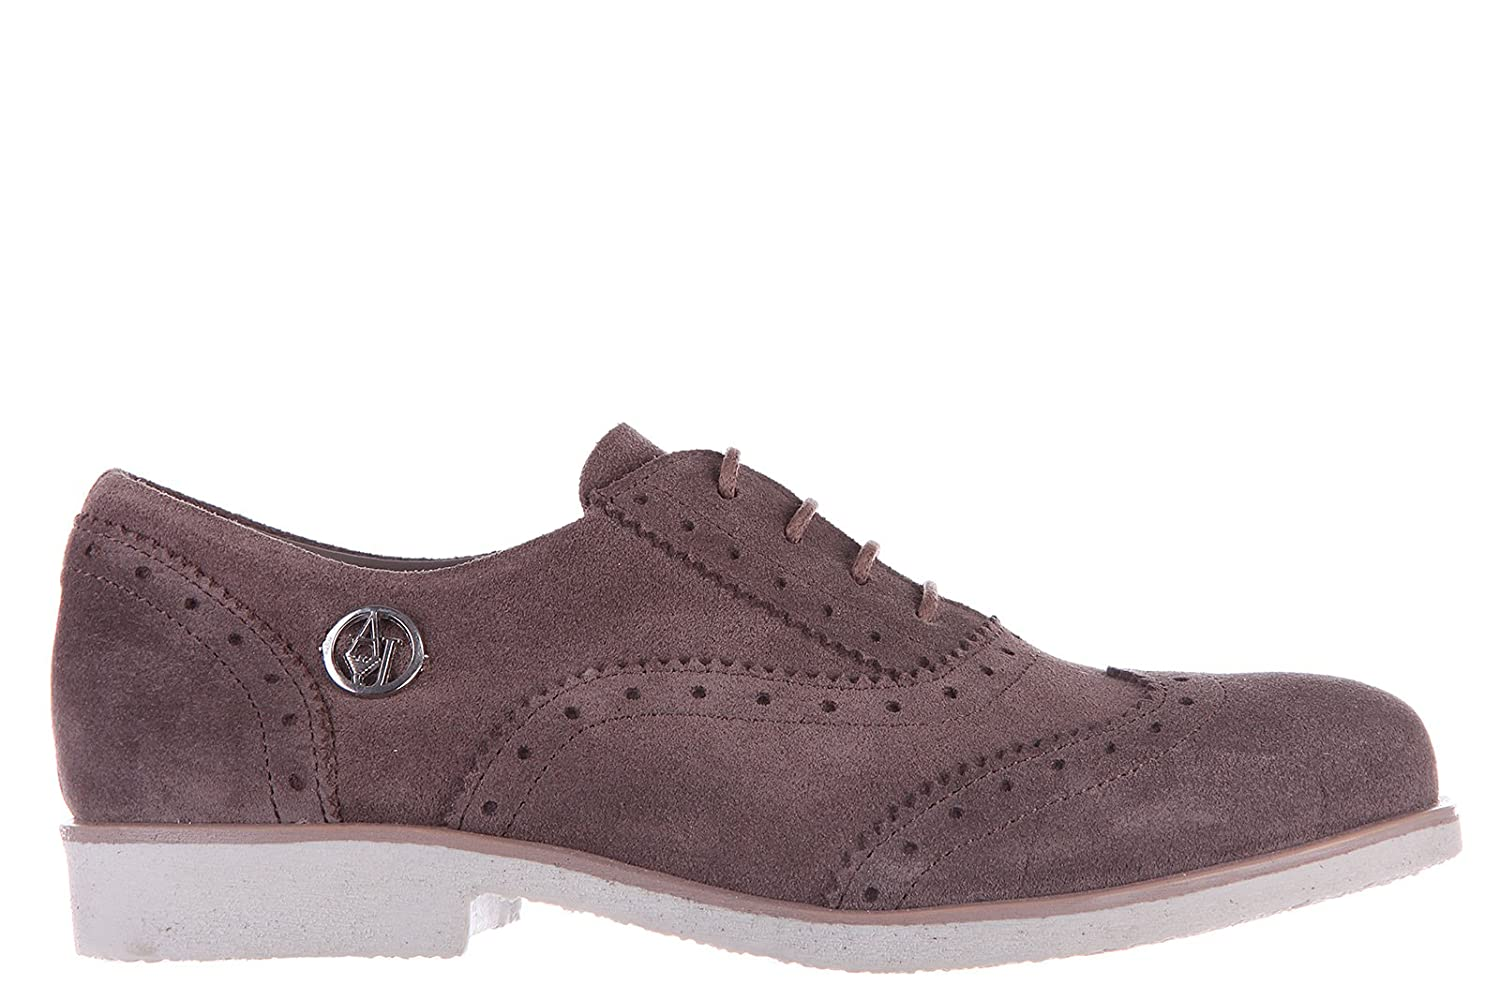 Armani Jeans women's classic suede lace up laced formal shoes brogue brown